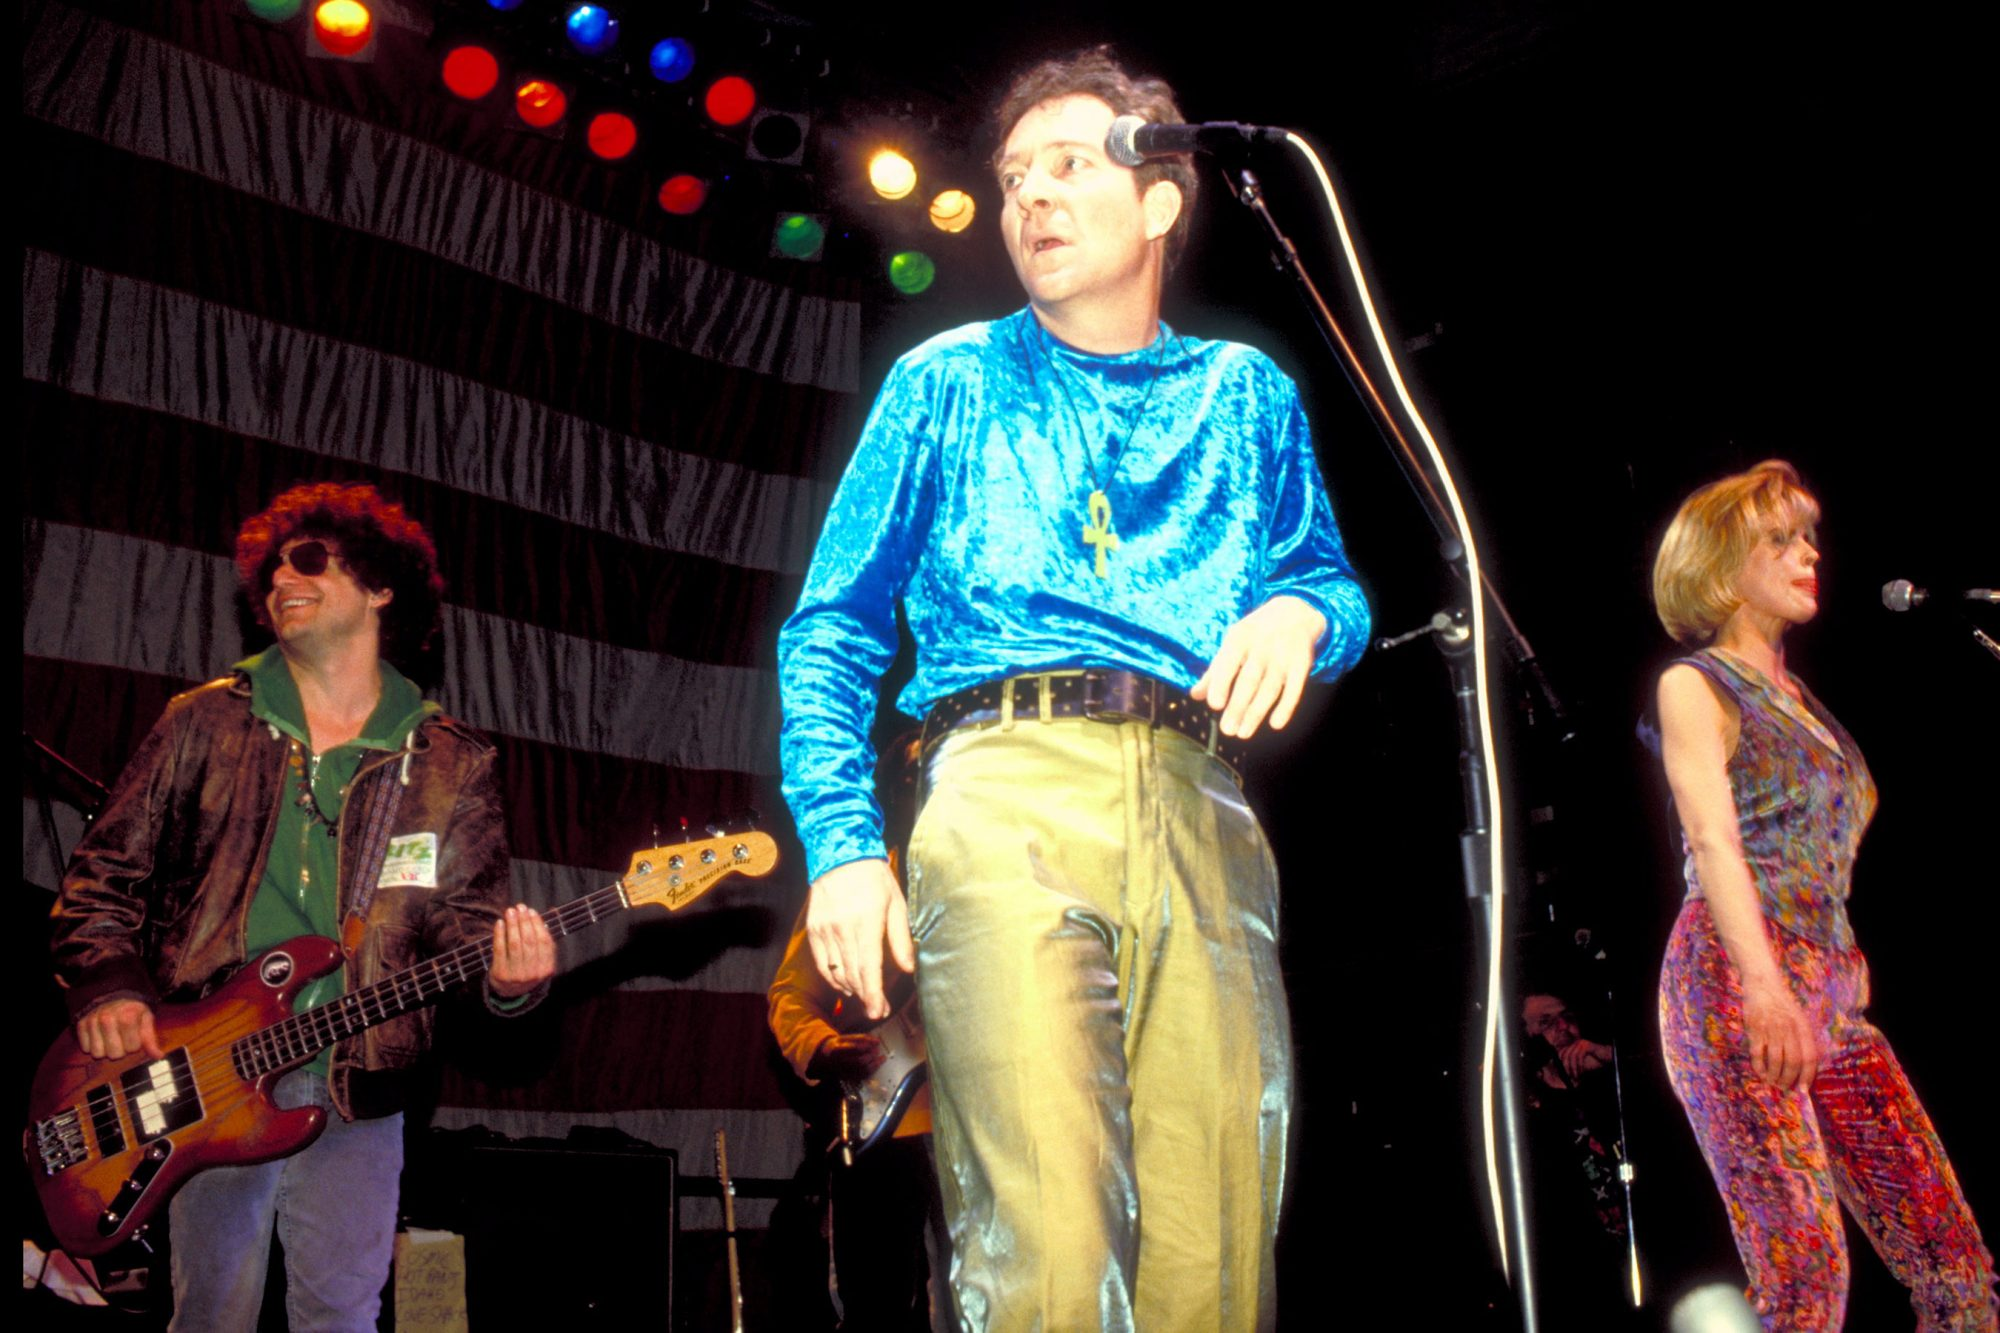 B-52s in Concert at Ritz - 1992